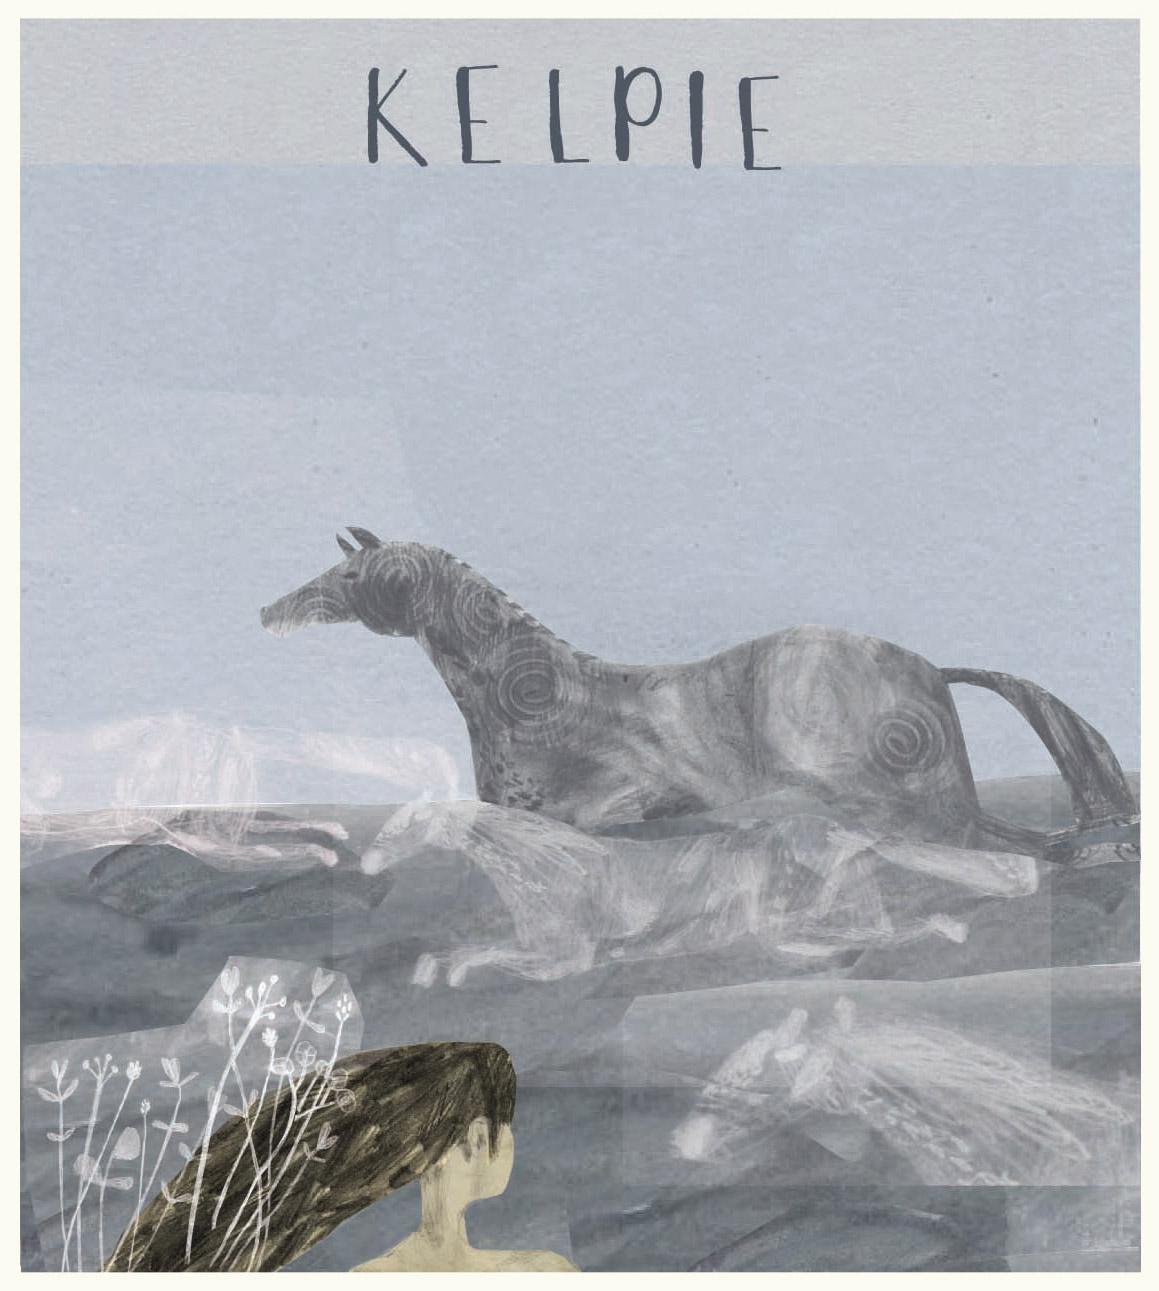 Brian McHendry 'Kelpie' postcard, commissioned exclusively for ÒR